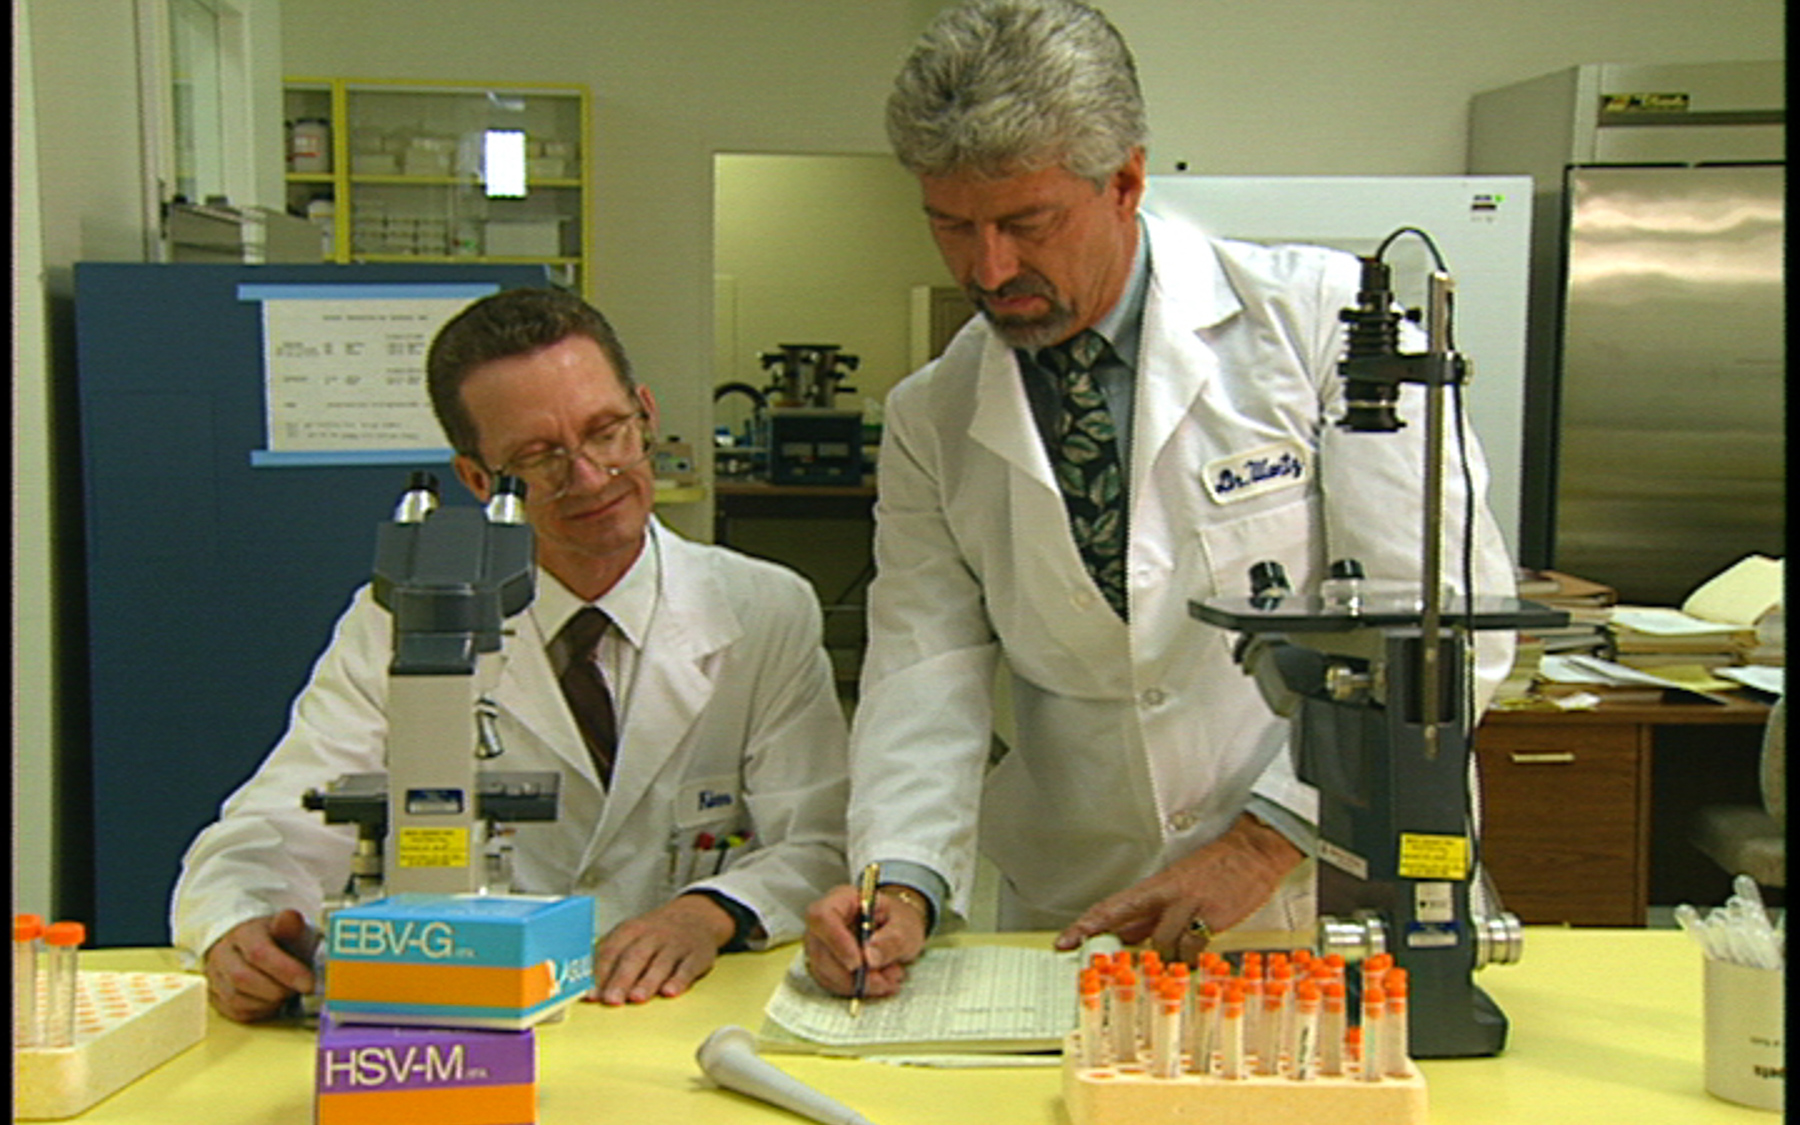 Dr. Wentz working in his Lab